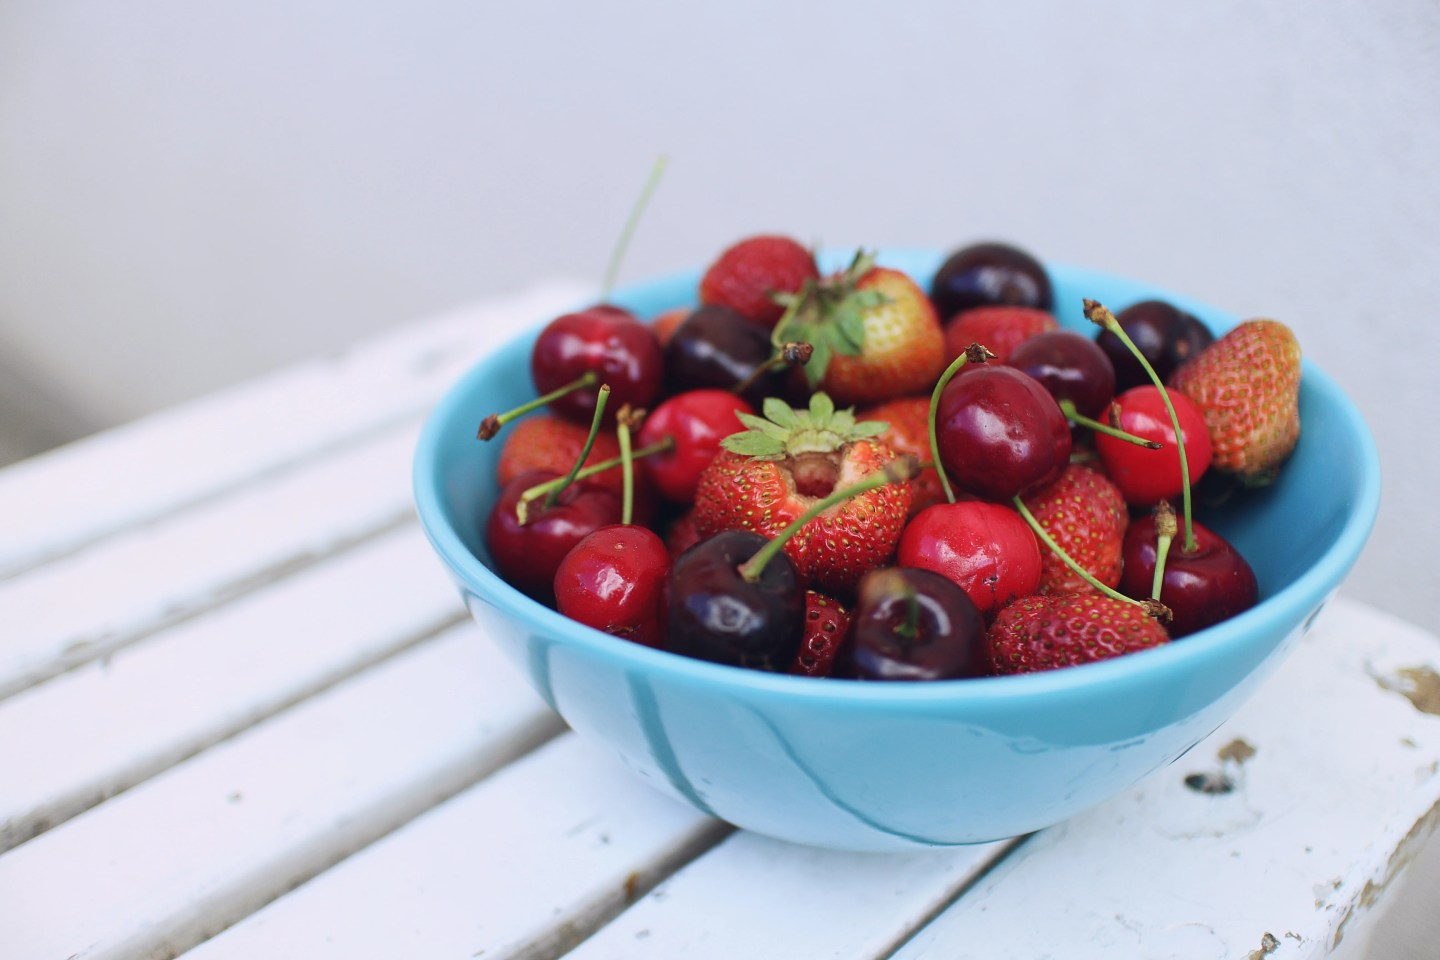 20 Cheap & Healthy Snack Options